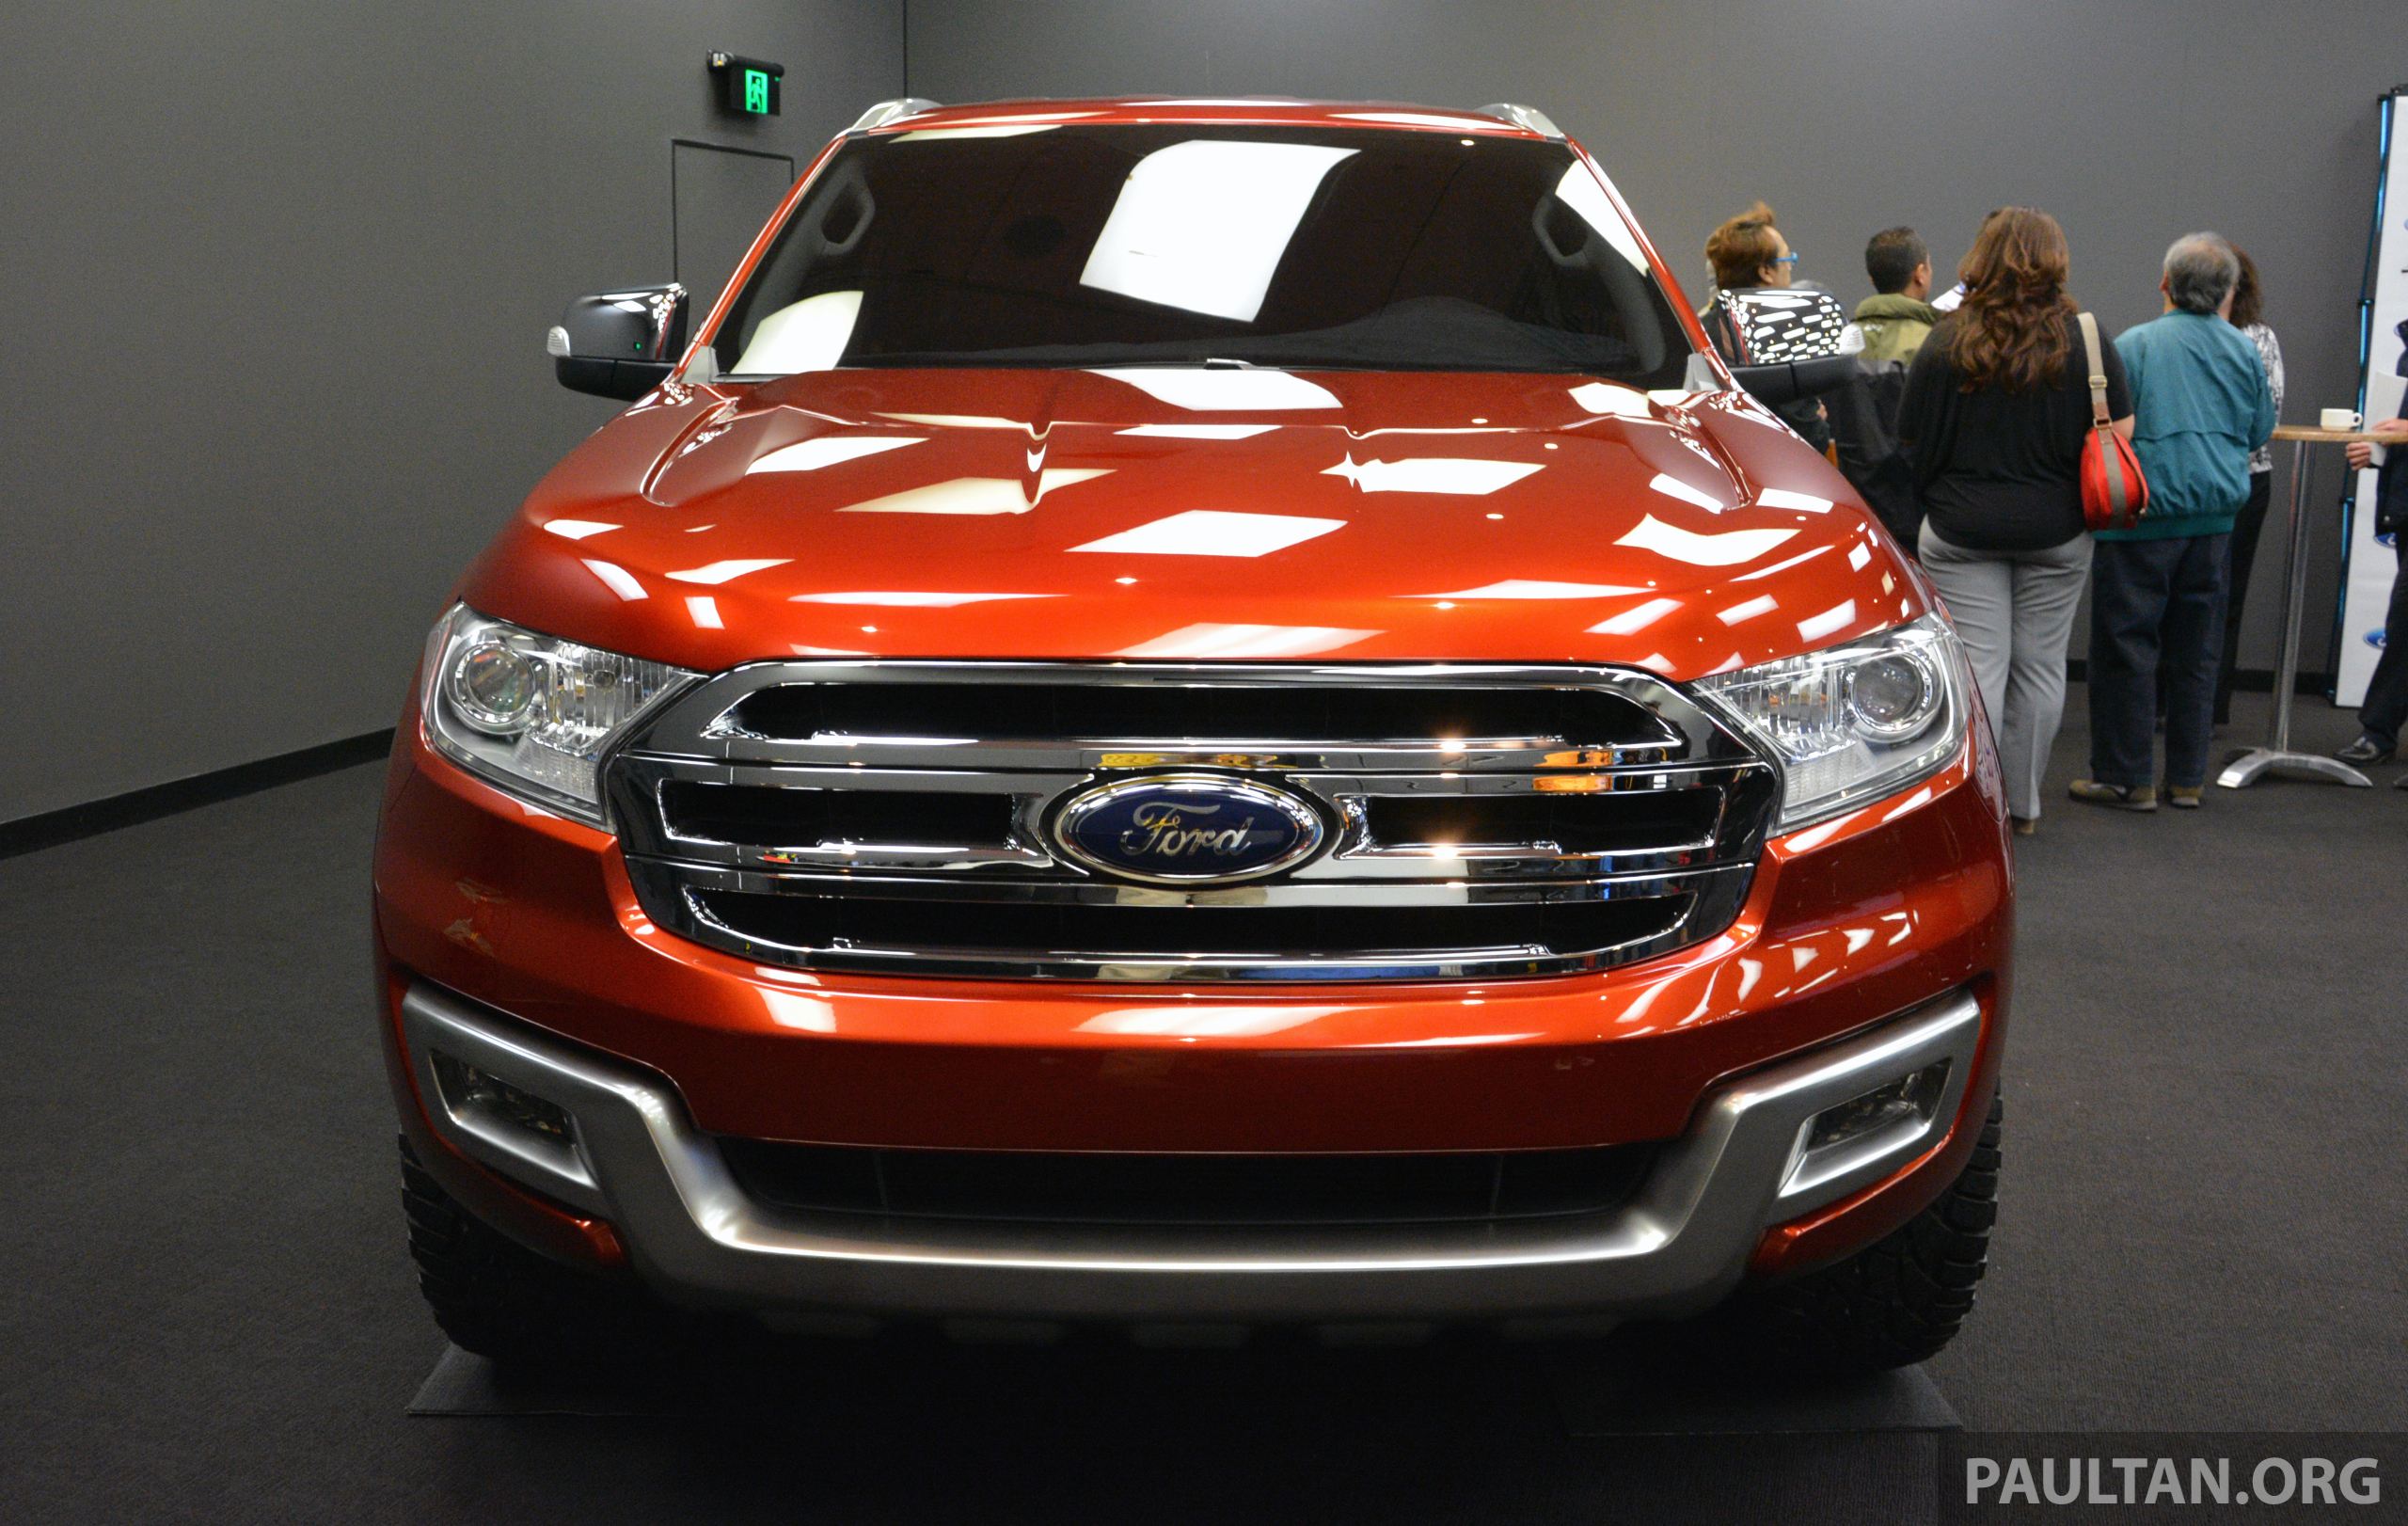 Ford Everest 2018 >> New Ford Everest to be revealed in China next week Paul Tan - Image 285656